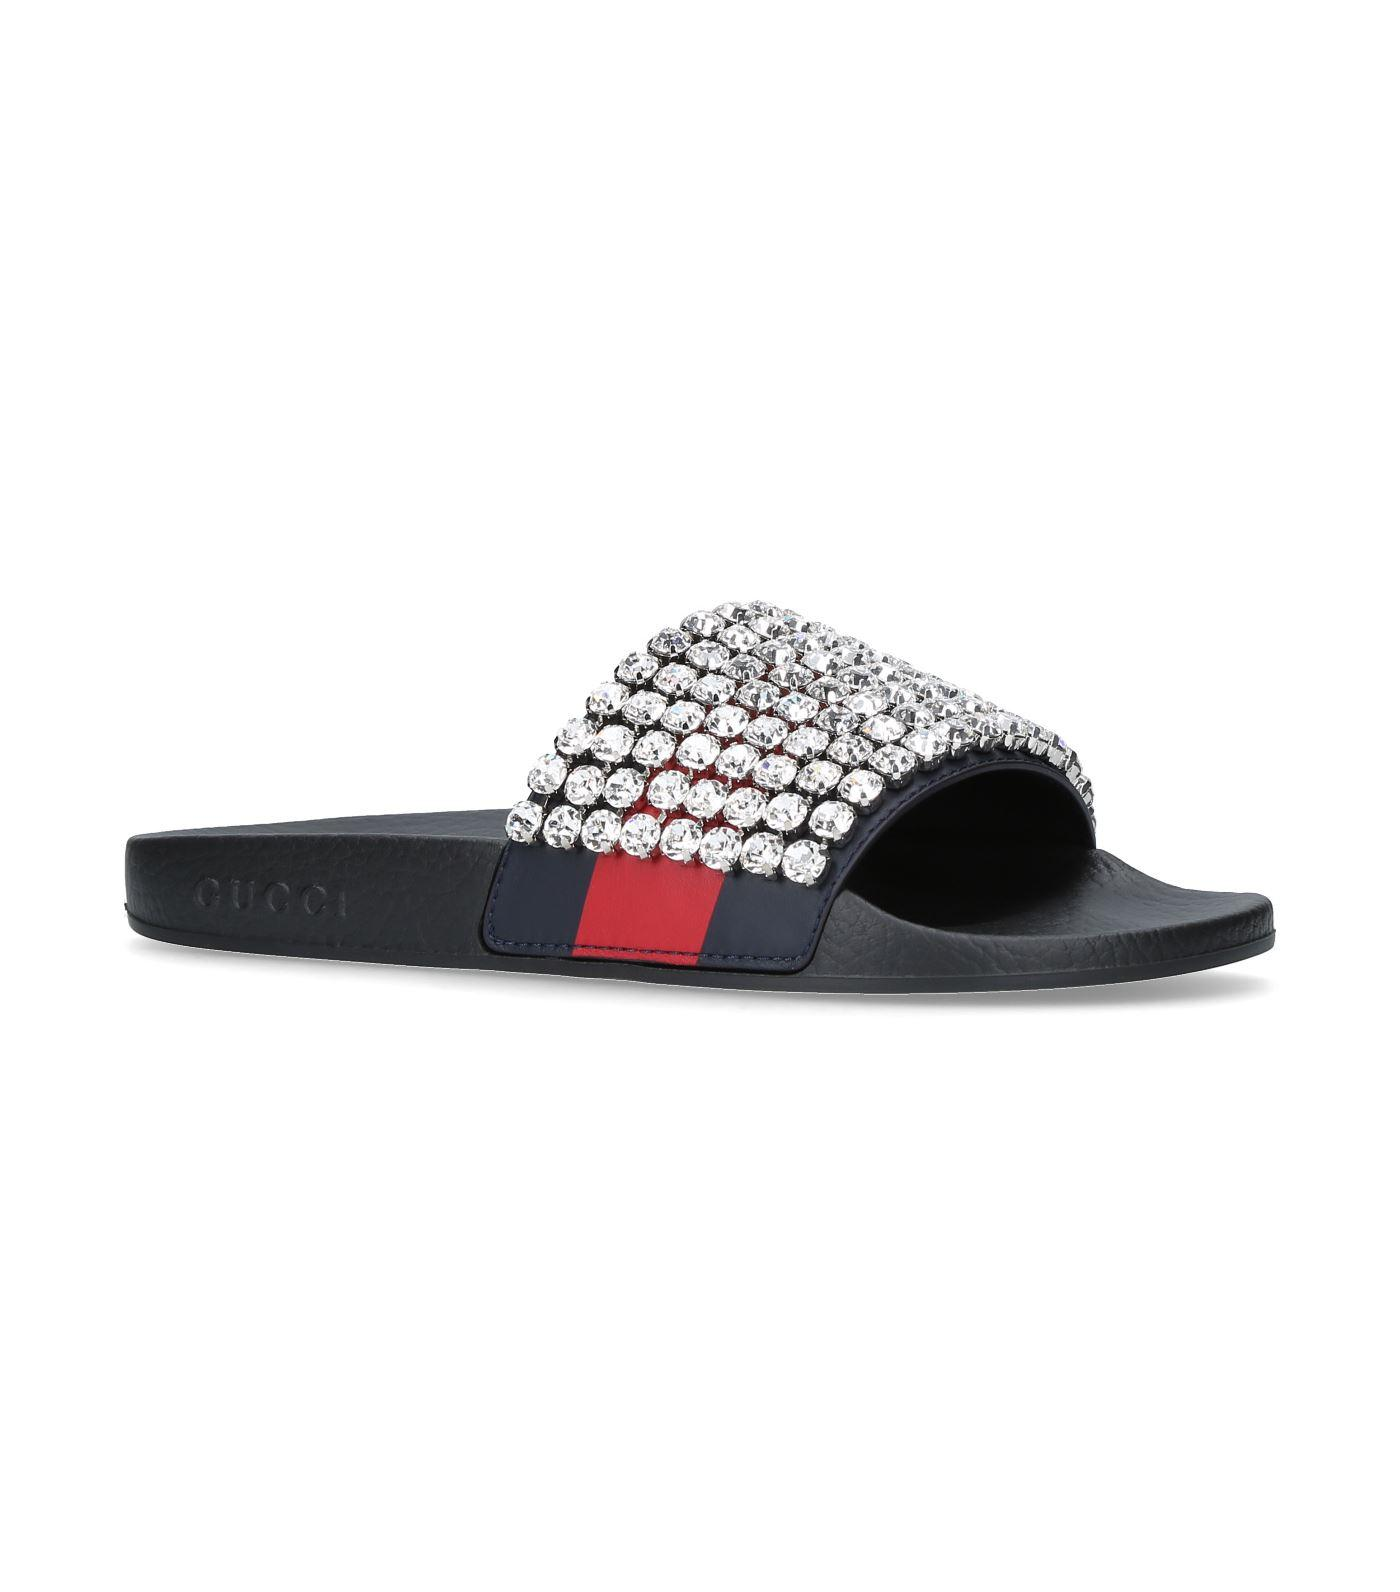 e9e87c7c0cd Gucci Pursuit Crystal-Embellished Leather And Rubber Slides In Black ...